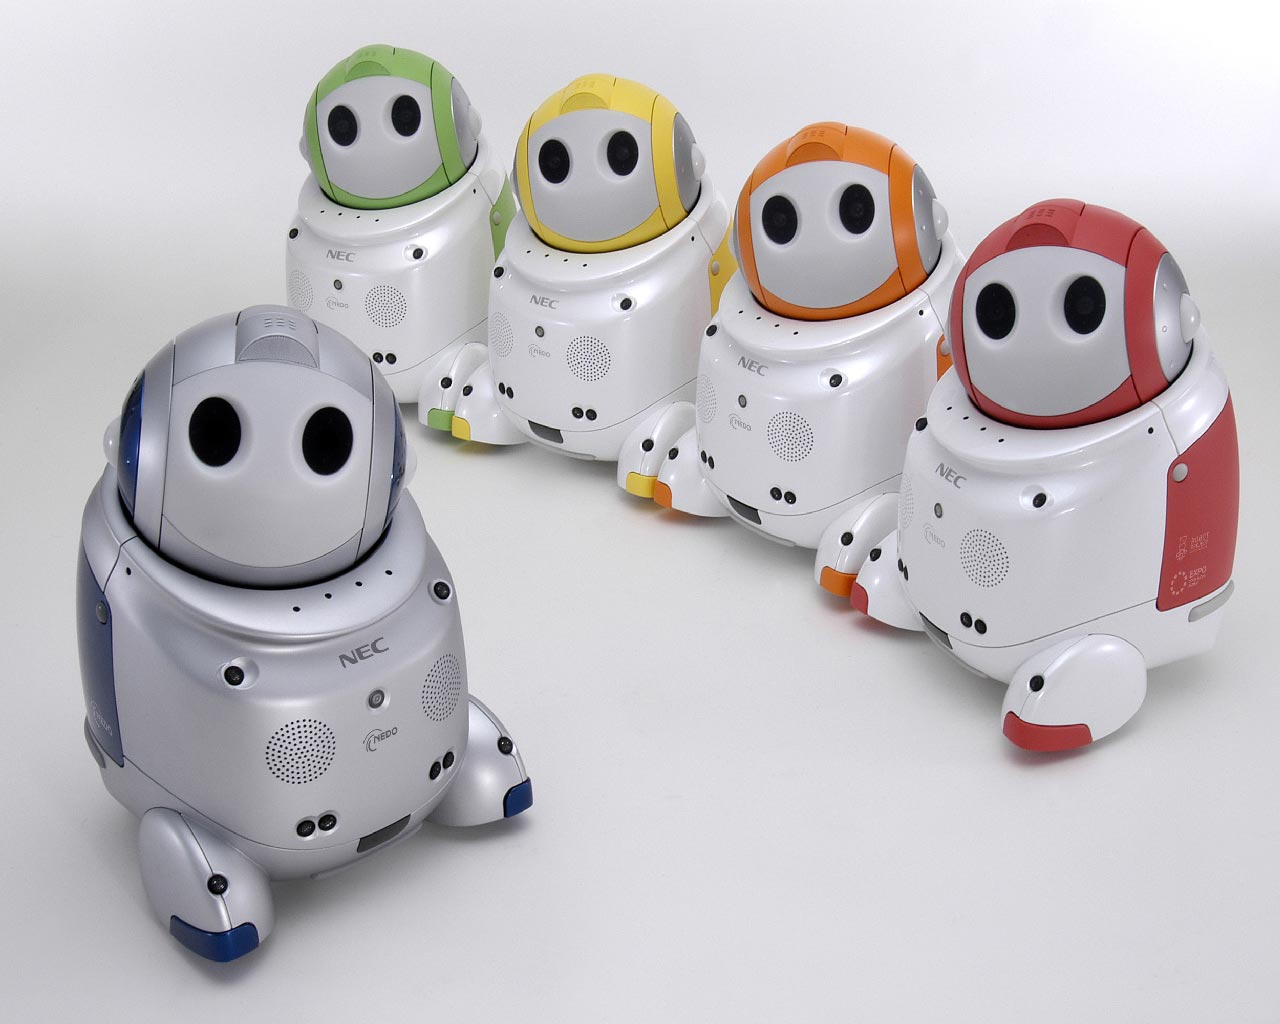 PaPeRo, a Home Robot by NEC